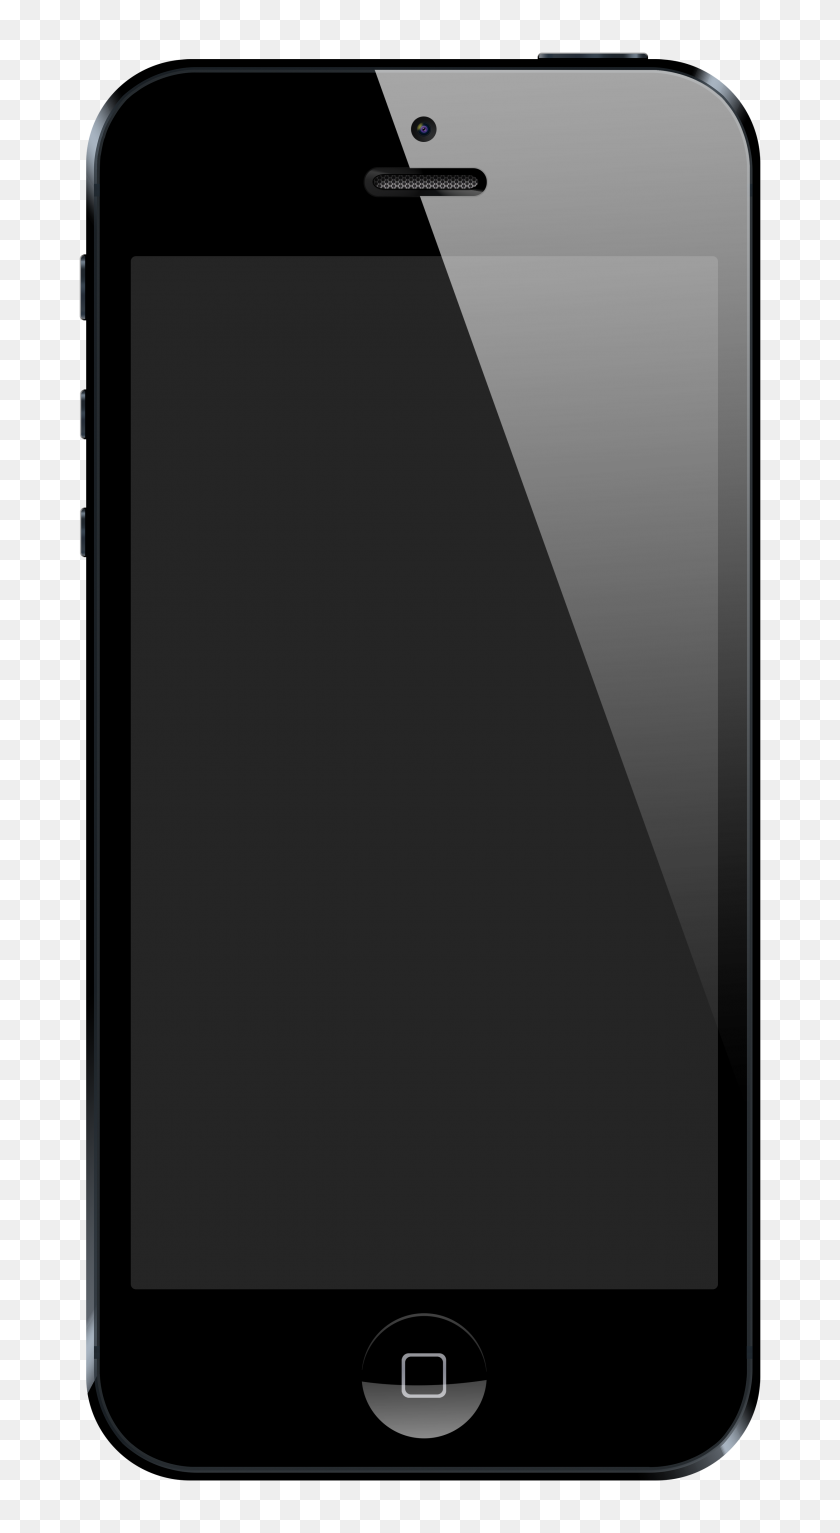 Phone Transparent Png Pictures - Phone PNG